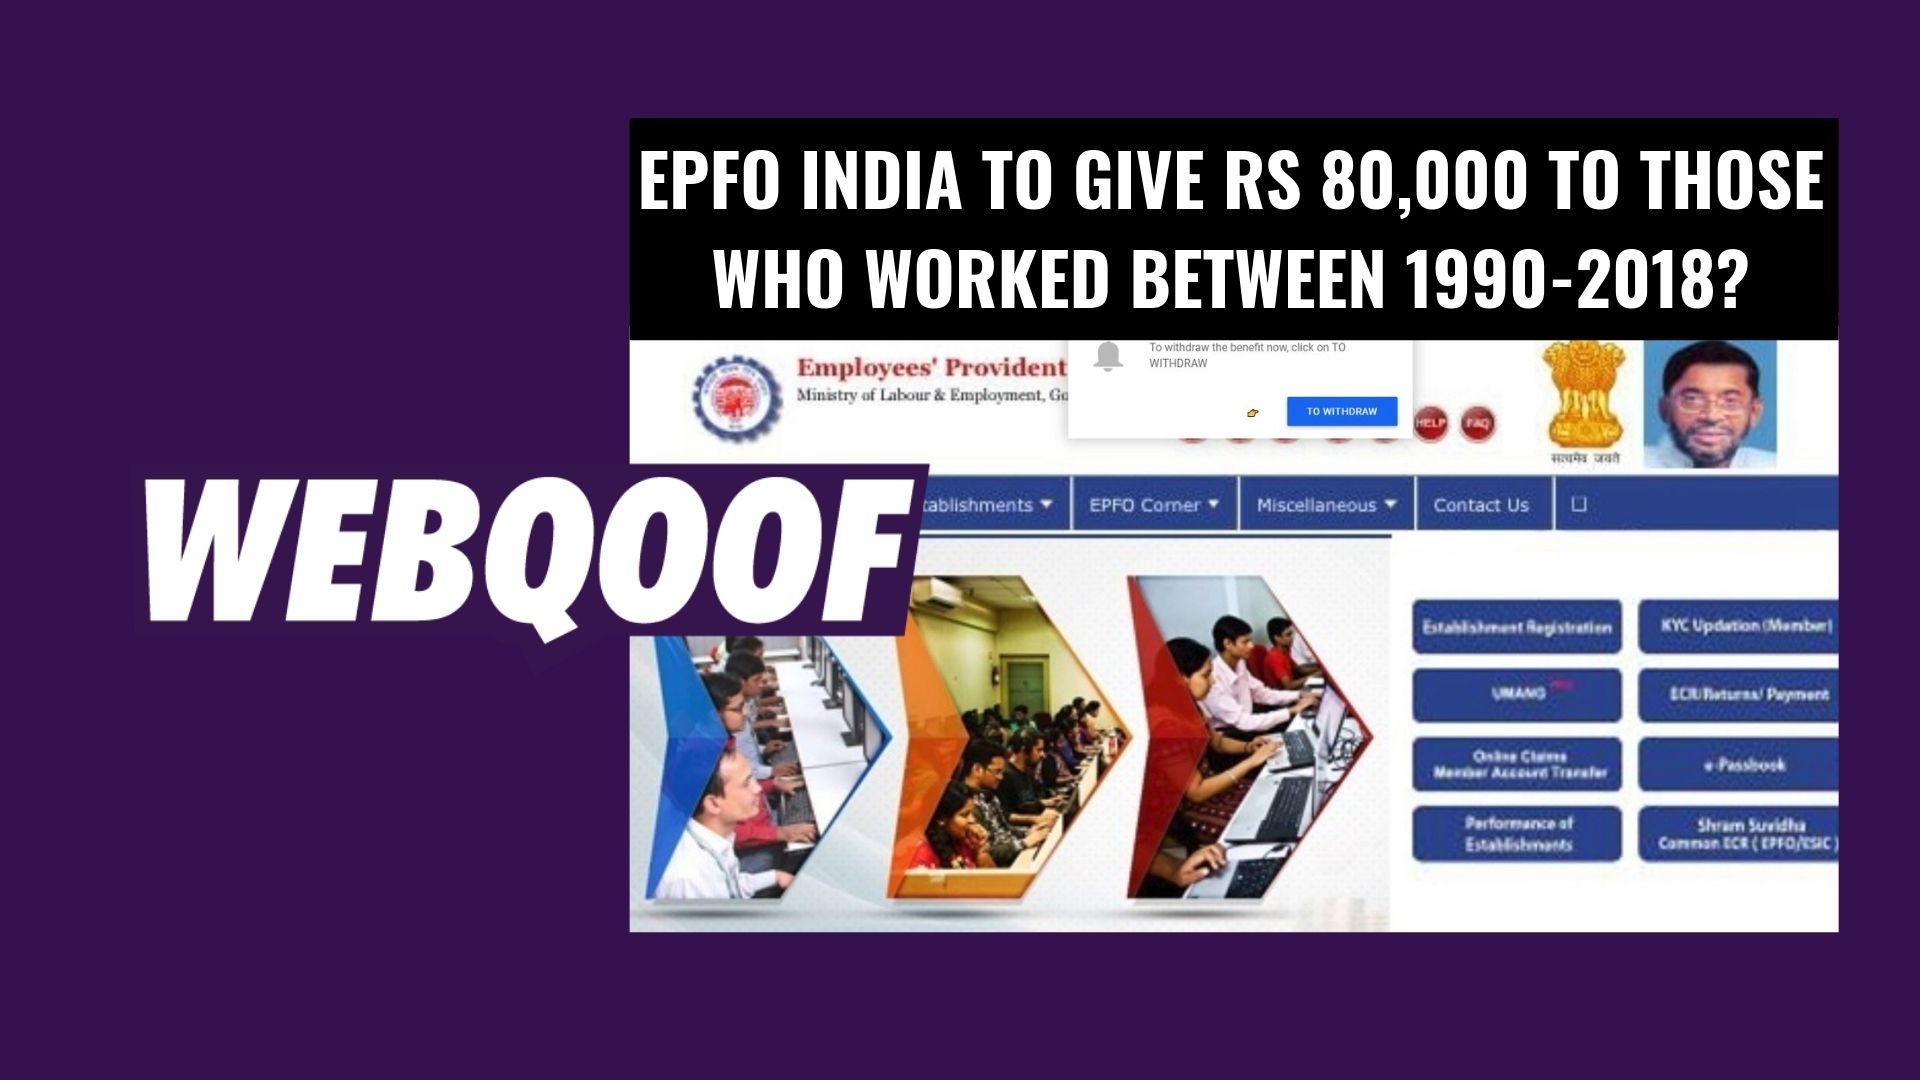 EPFO India Not Giving Rs 80,000 to Those Who Worked From 1990-2018